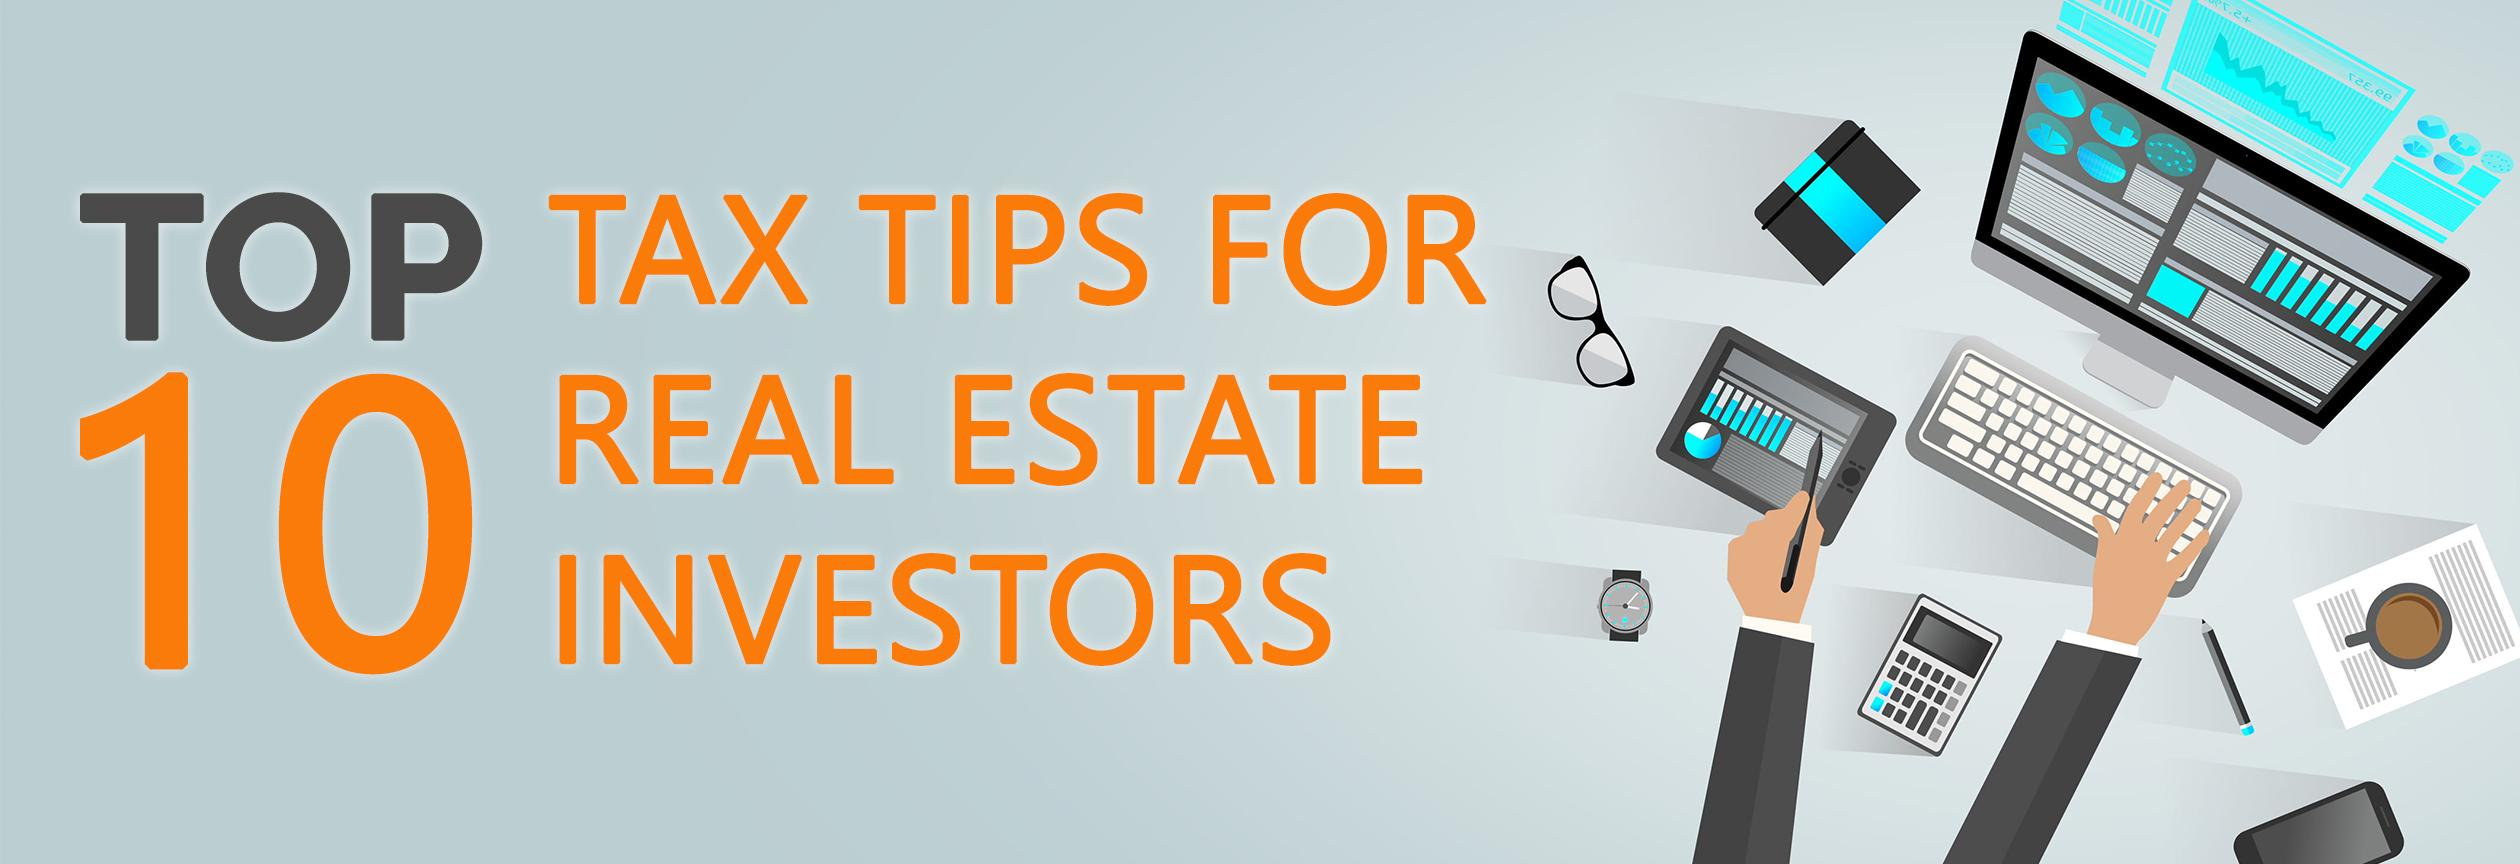 Real Estate Investor Tax Tips